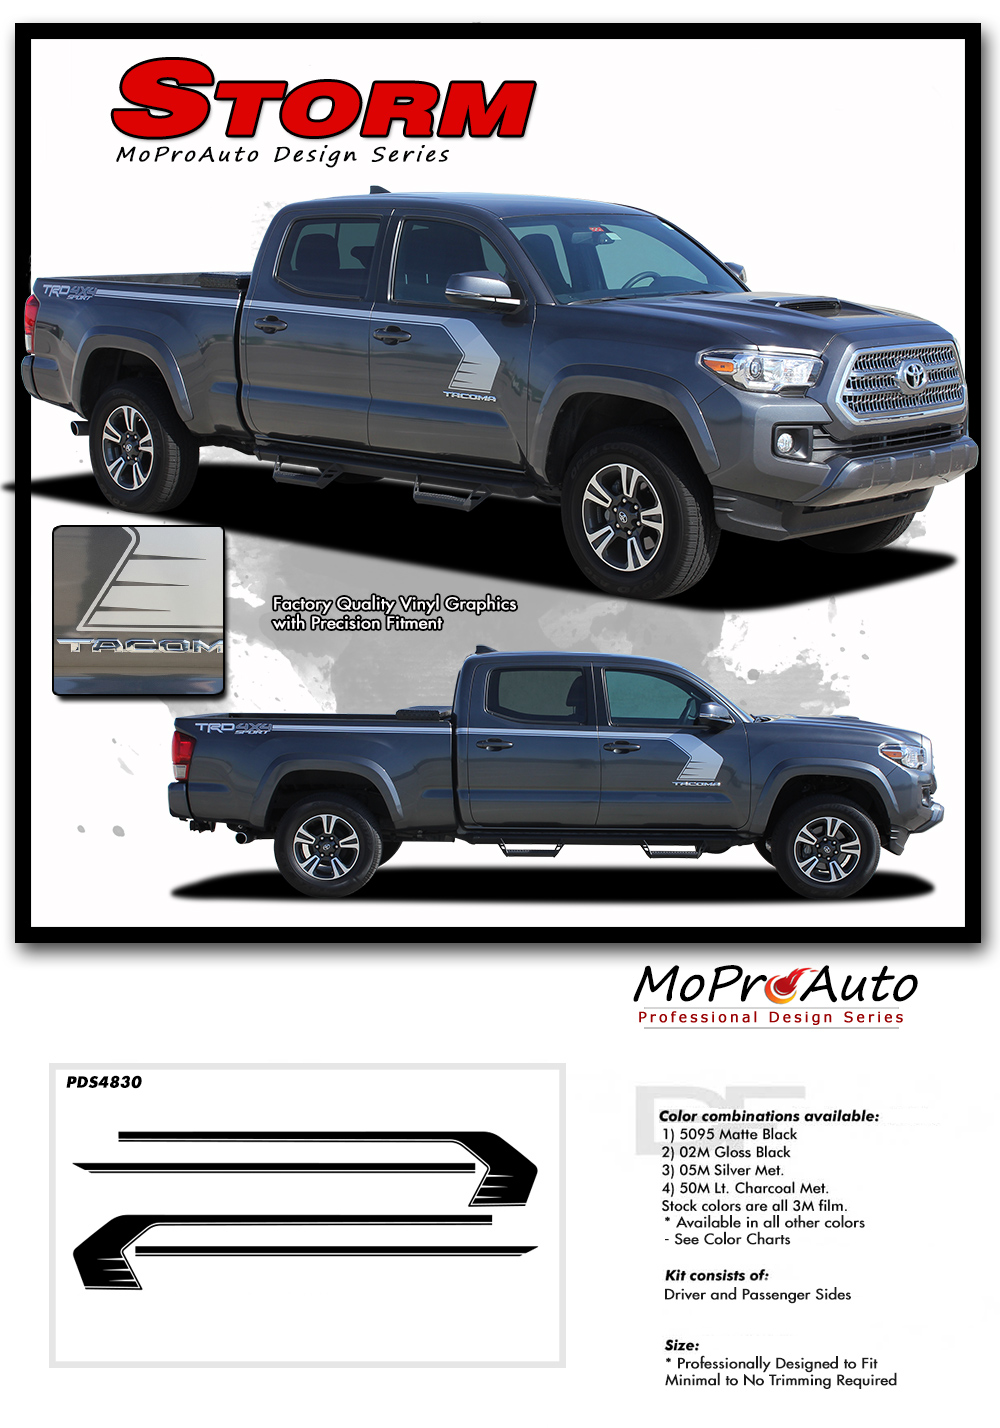 2015 2016 2017 2018 STORM : Toyota Tacoma Truck TRD Sport Pro - MoProAuto Pro Design Series Vinyl Graphics, Stripes and Decals Kit